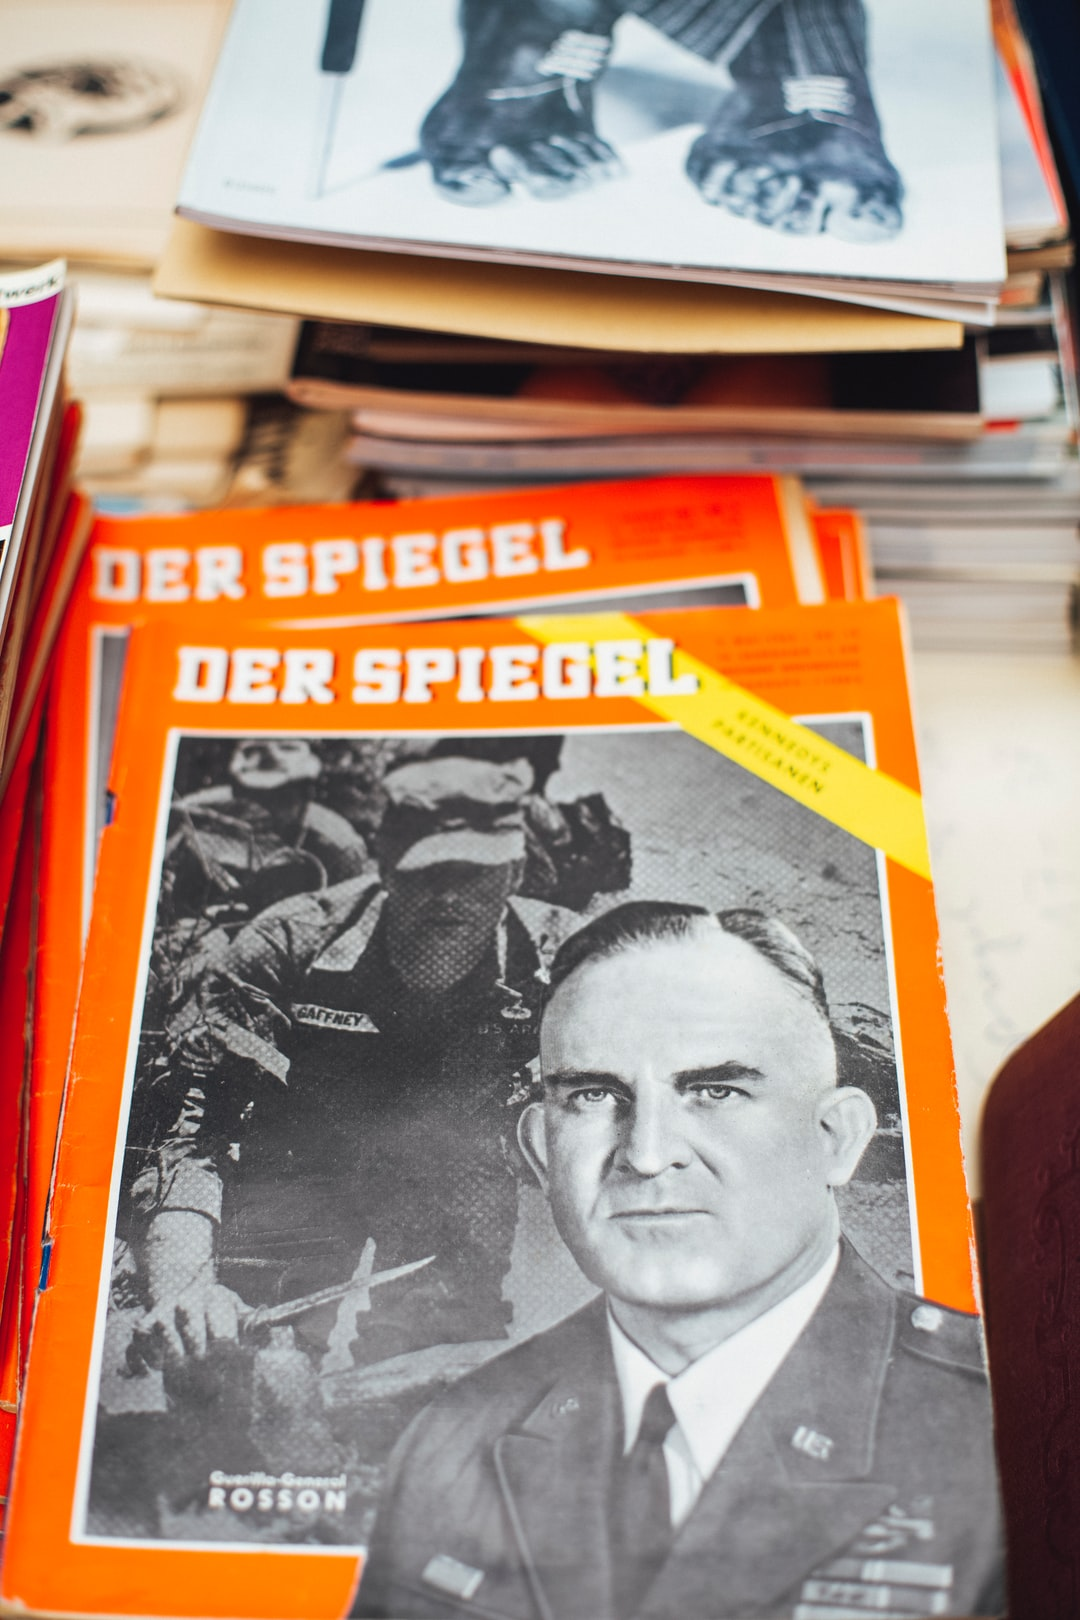 DER SPIEGEL 19/1962. Made with Canon 5d Mark III and loved analog lens, Leica Summilux-R 1.4 50mm (Year: 1983)